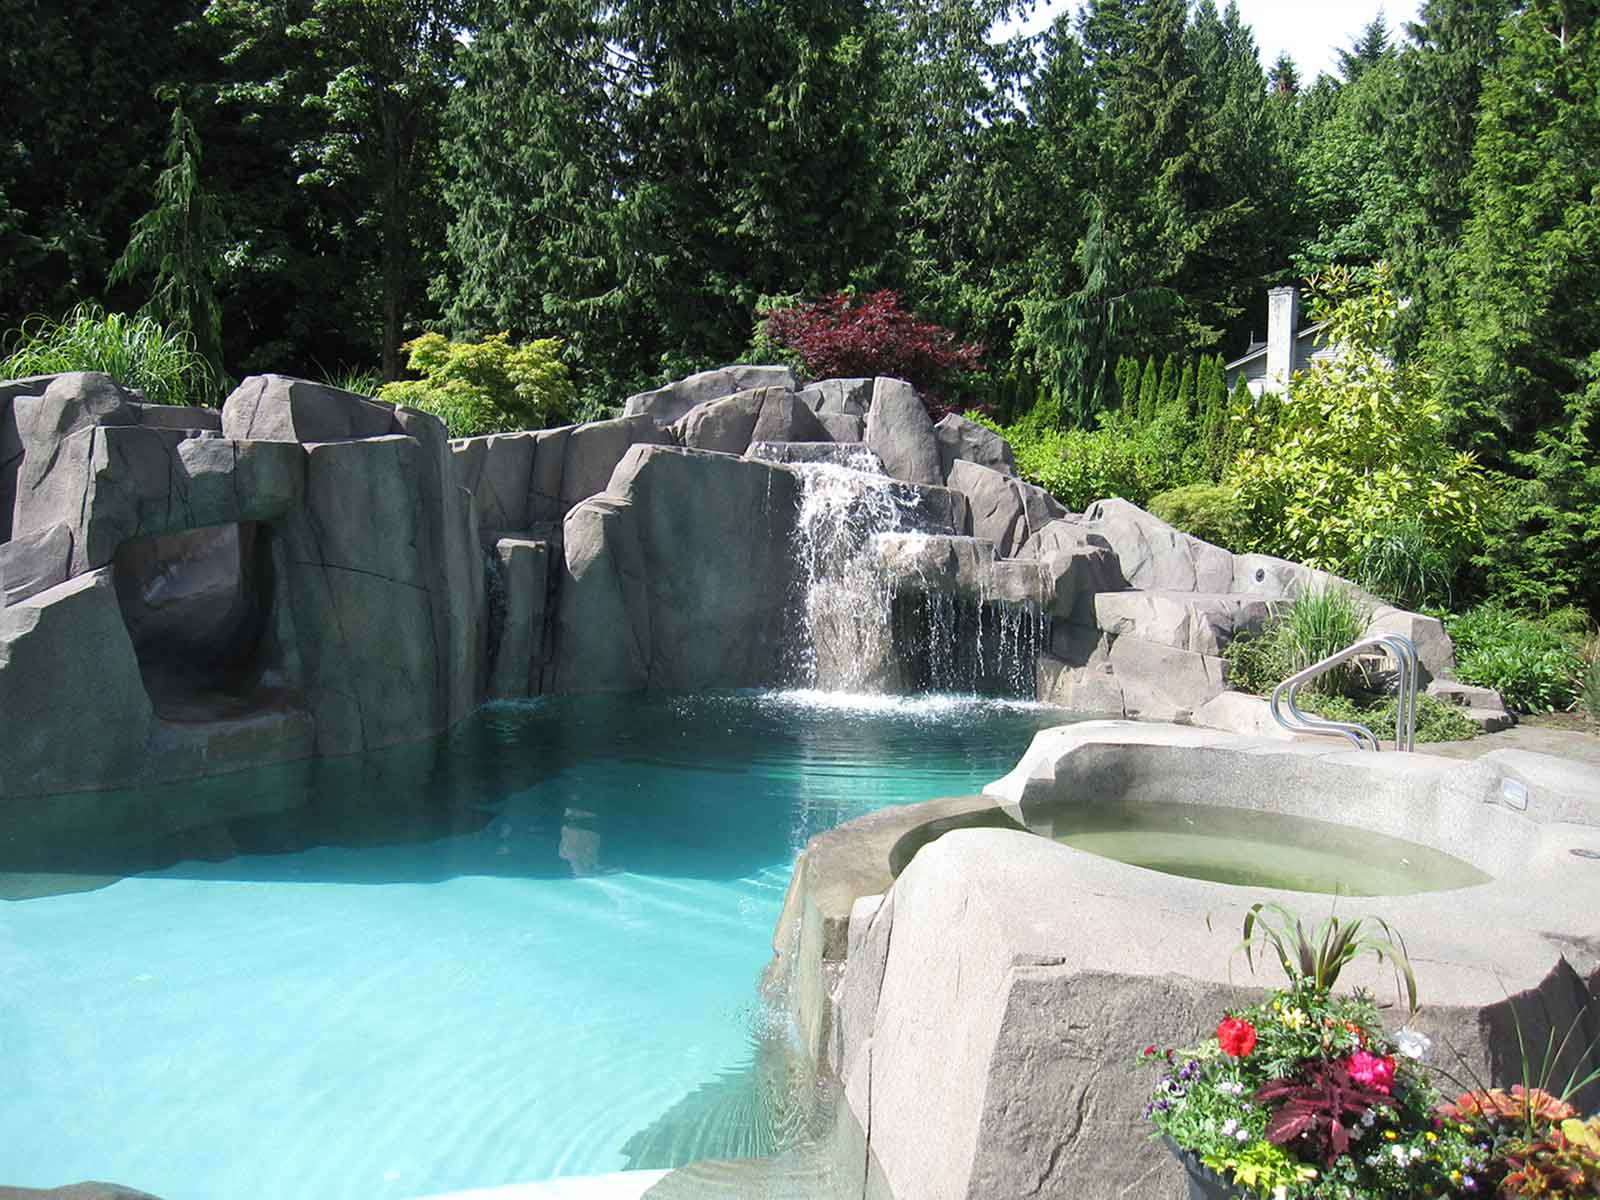 Spectacular outdoor swimming pool with artificial rock walls